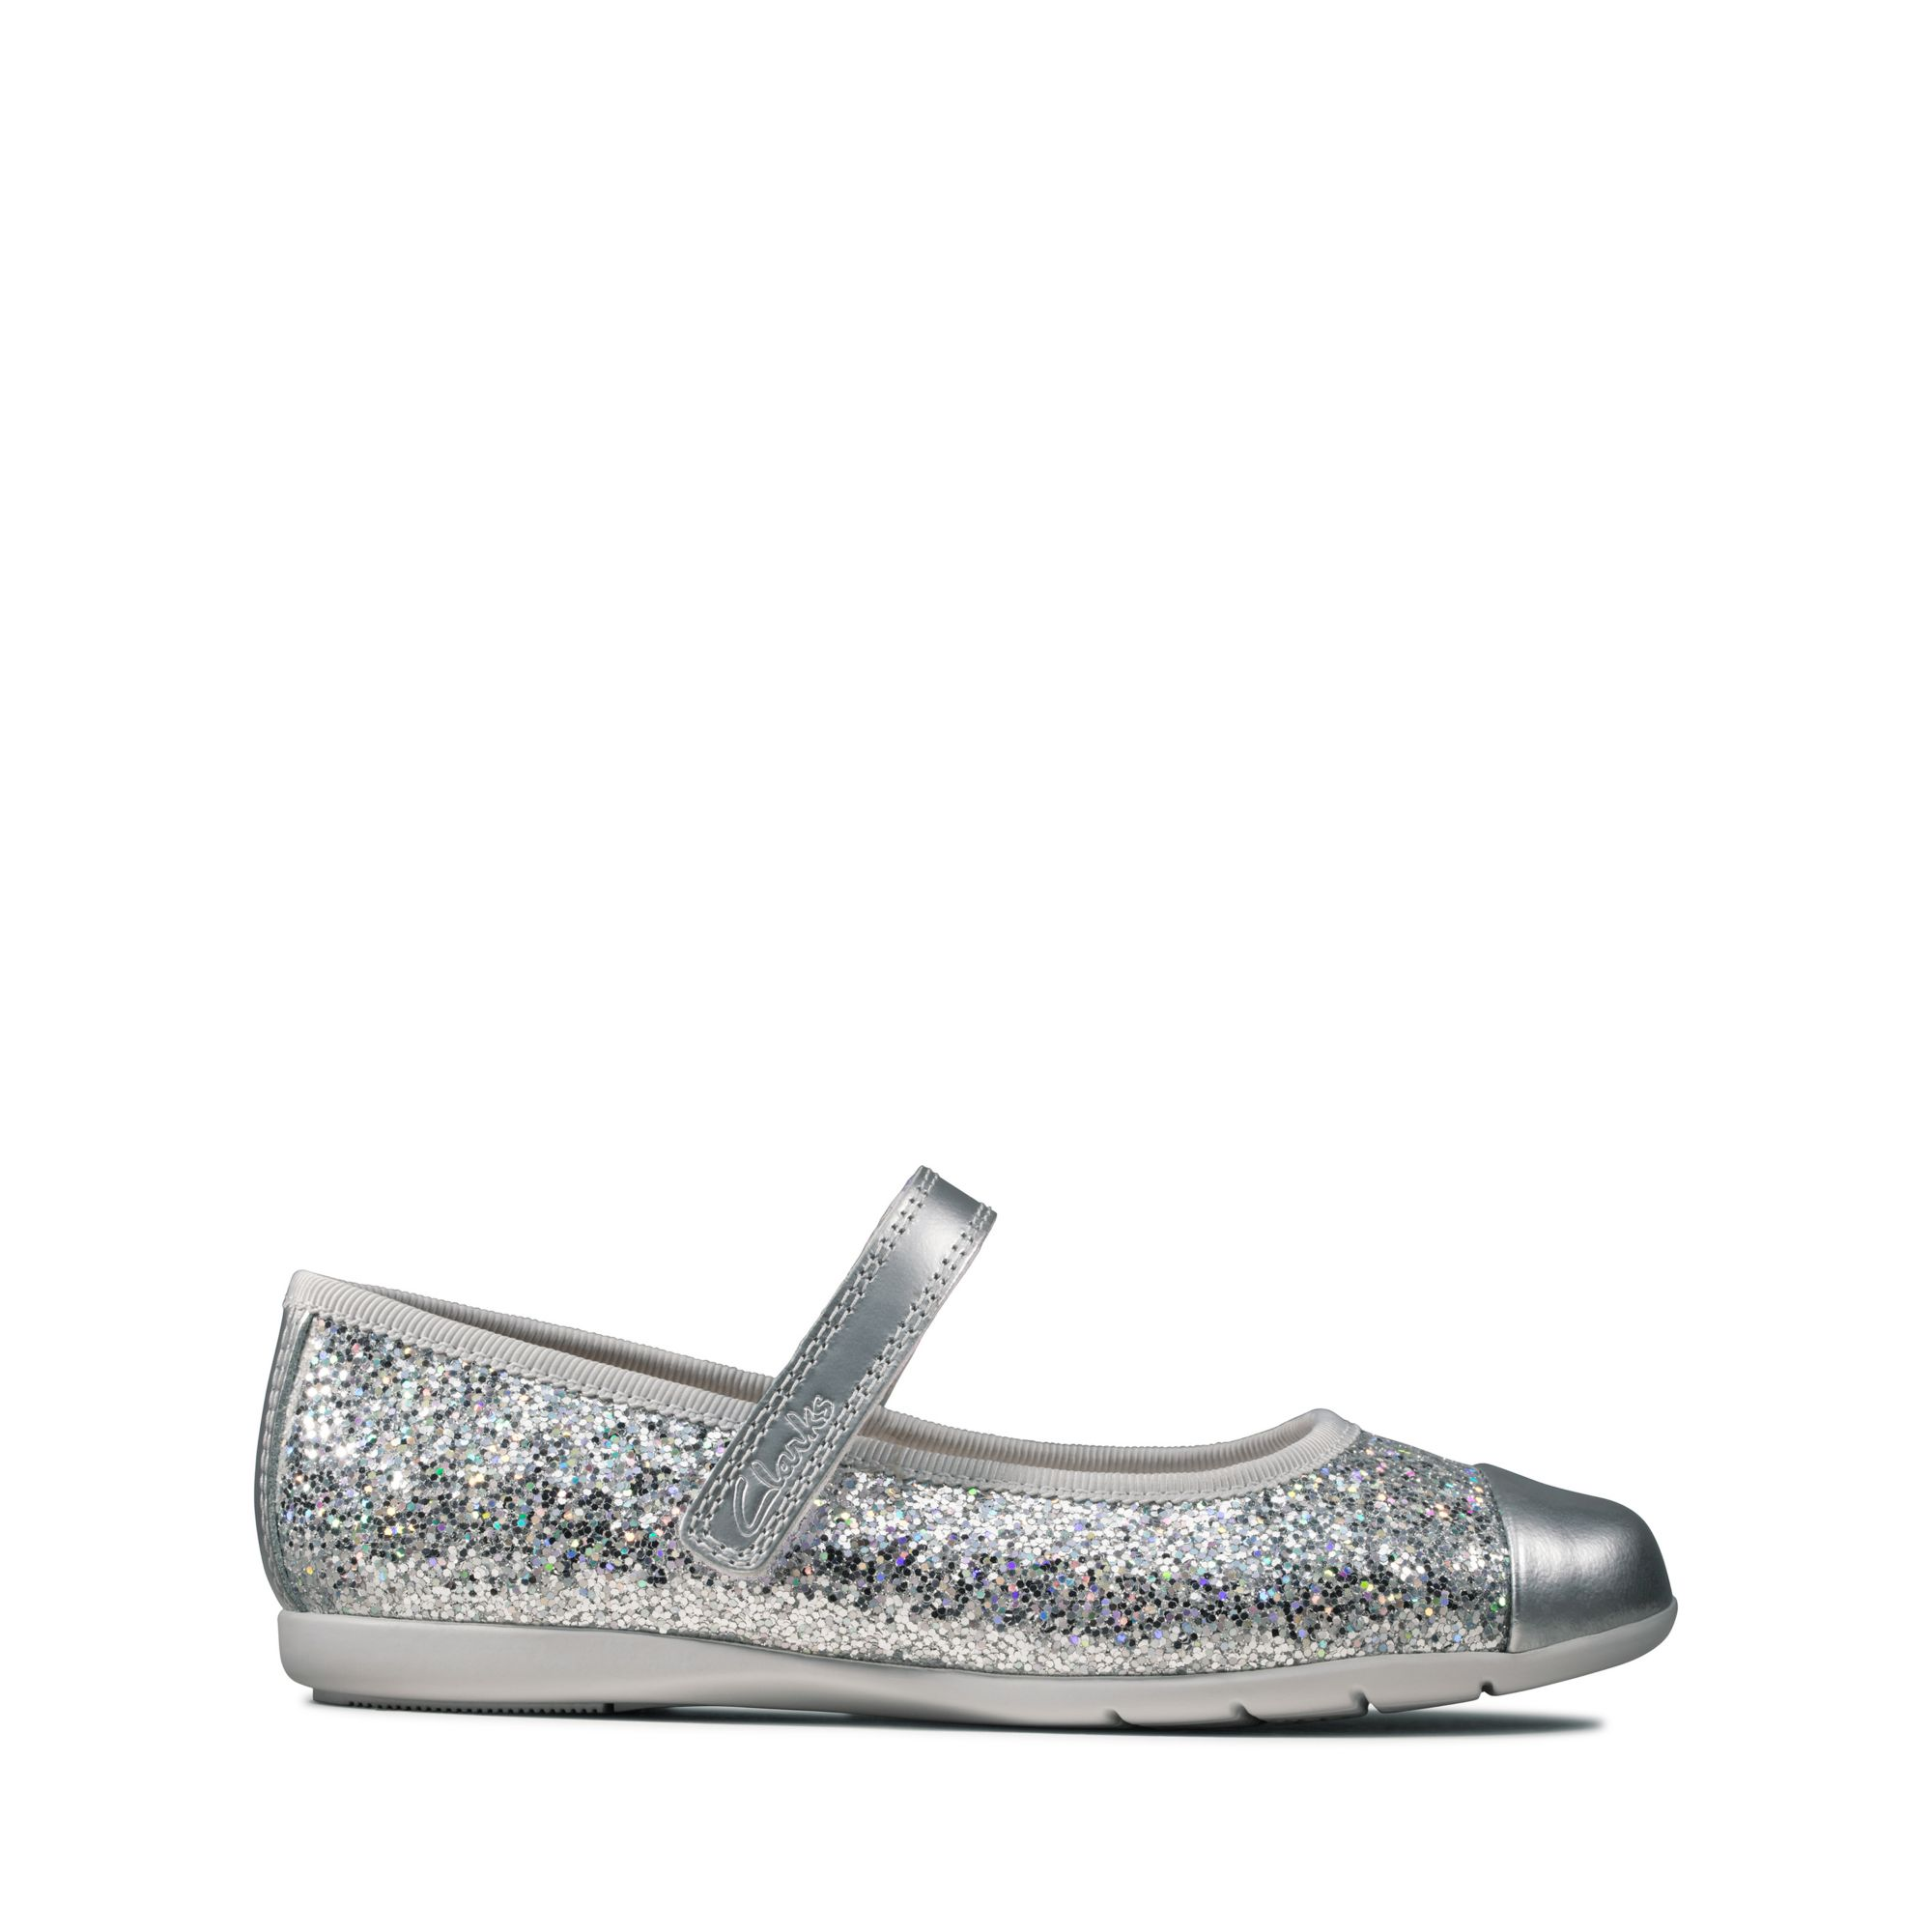 Clarks Dance Tap Toddler – Synthetic